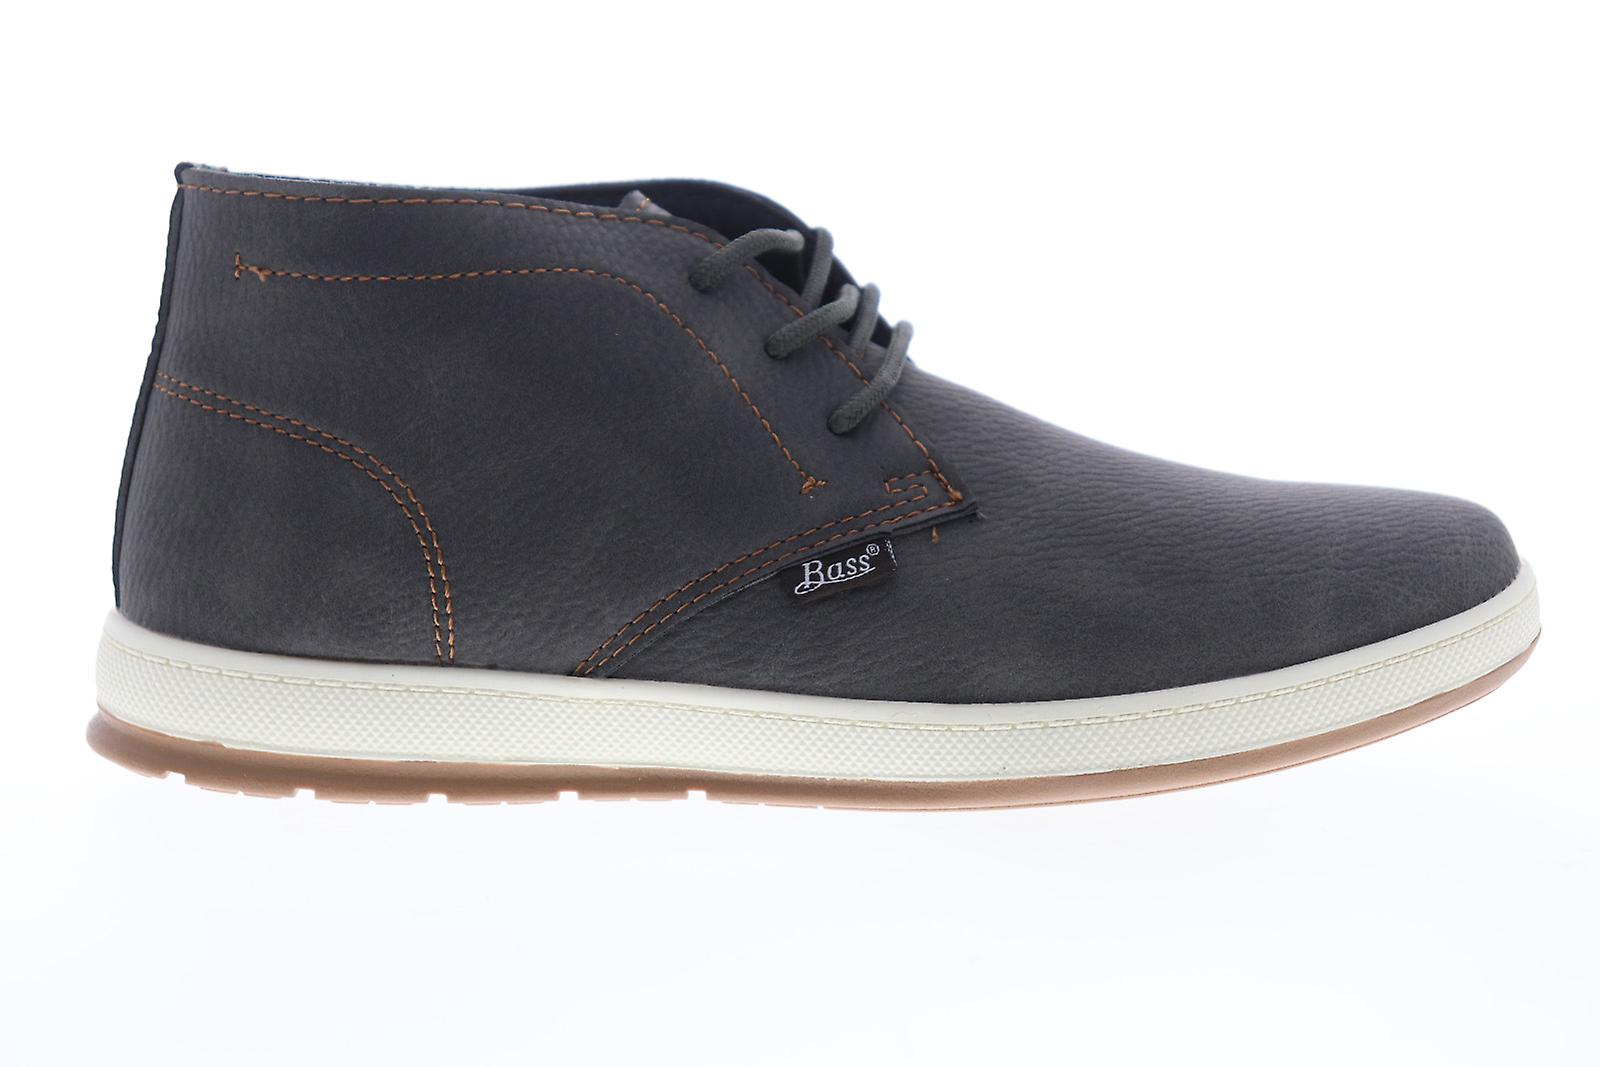 G.H. Bass Sonoma 2 Wx B Mens Gray Leather Lace Up Chukkas Boots - Remise particulière